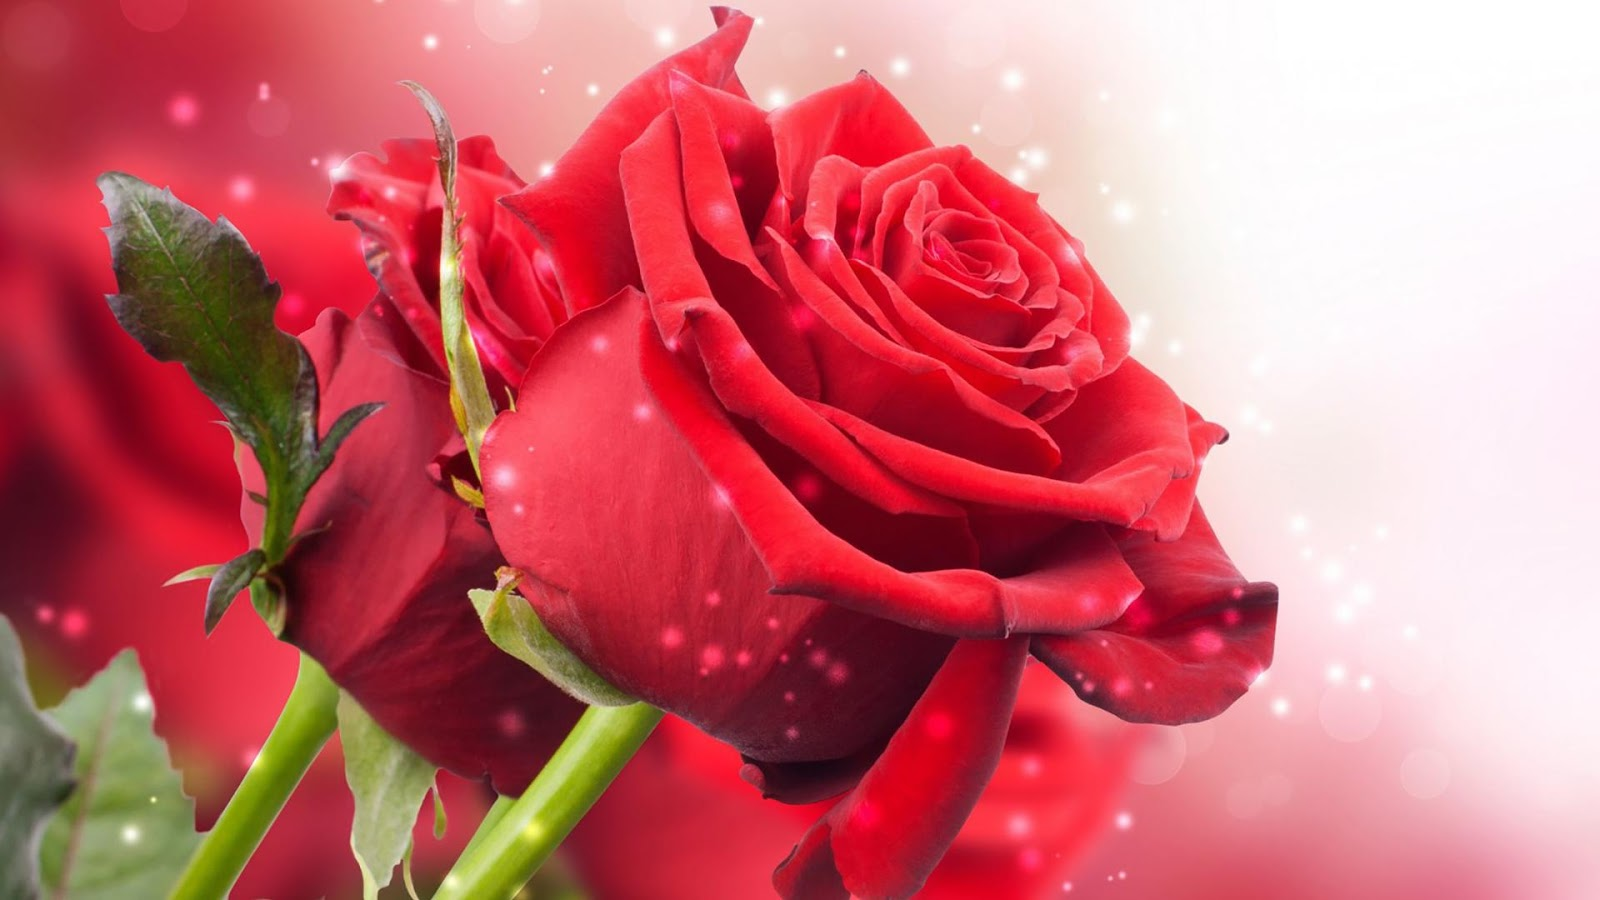 lovely rose wallpaper flowers nature wallpapers in jpg format for